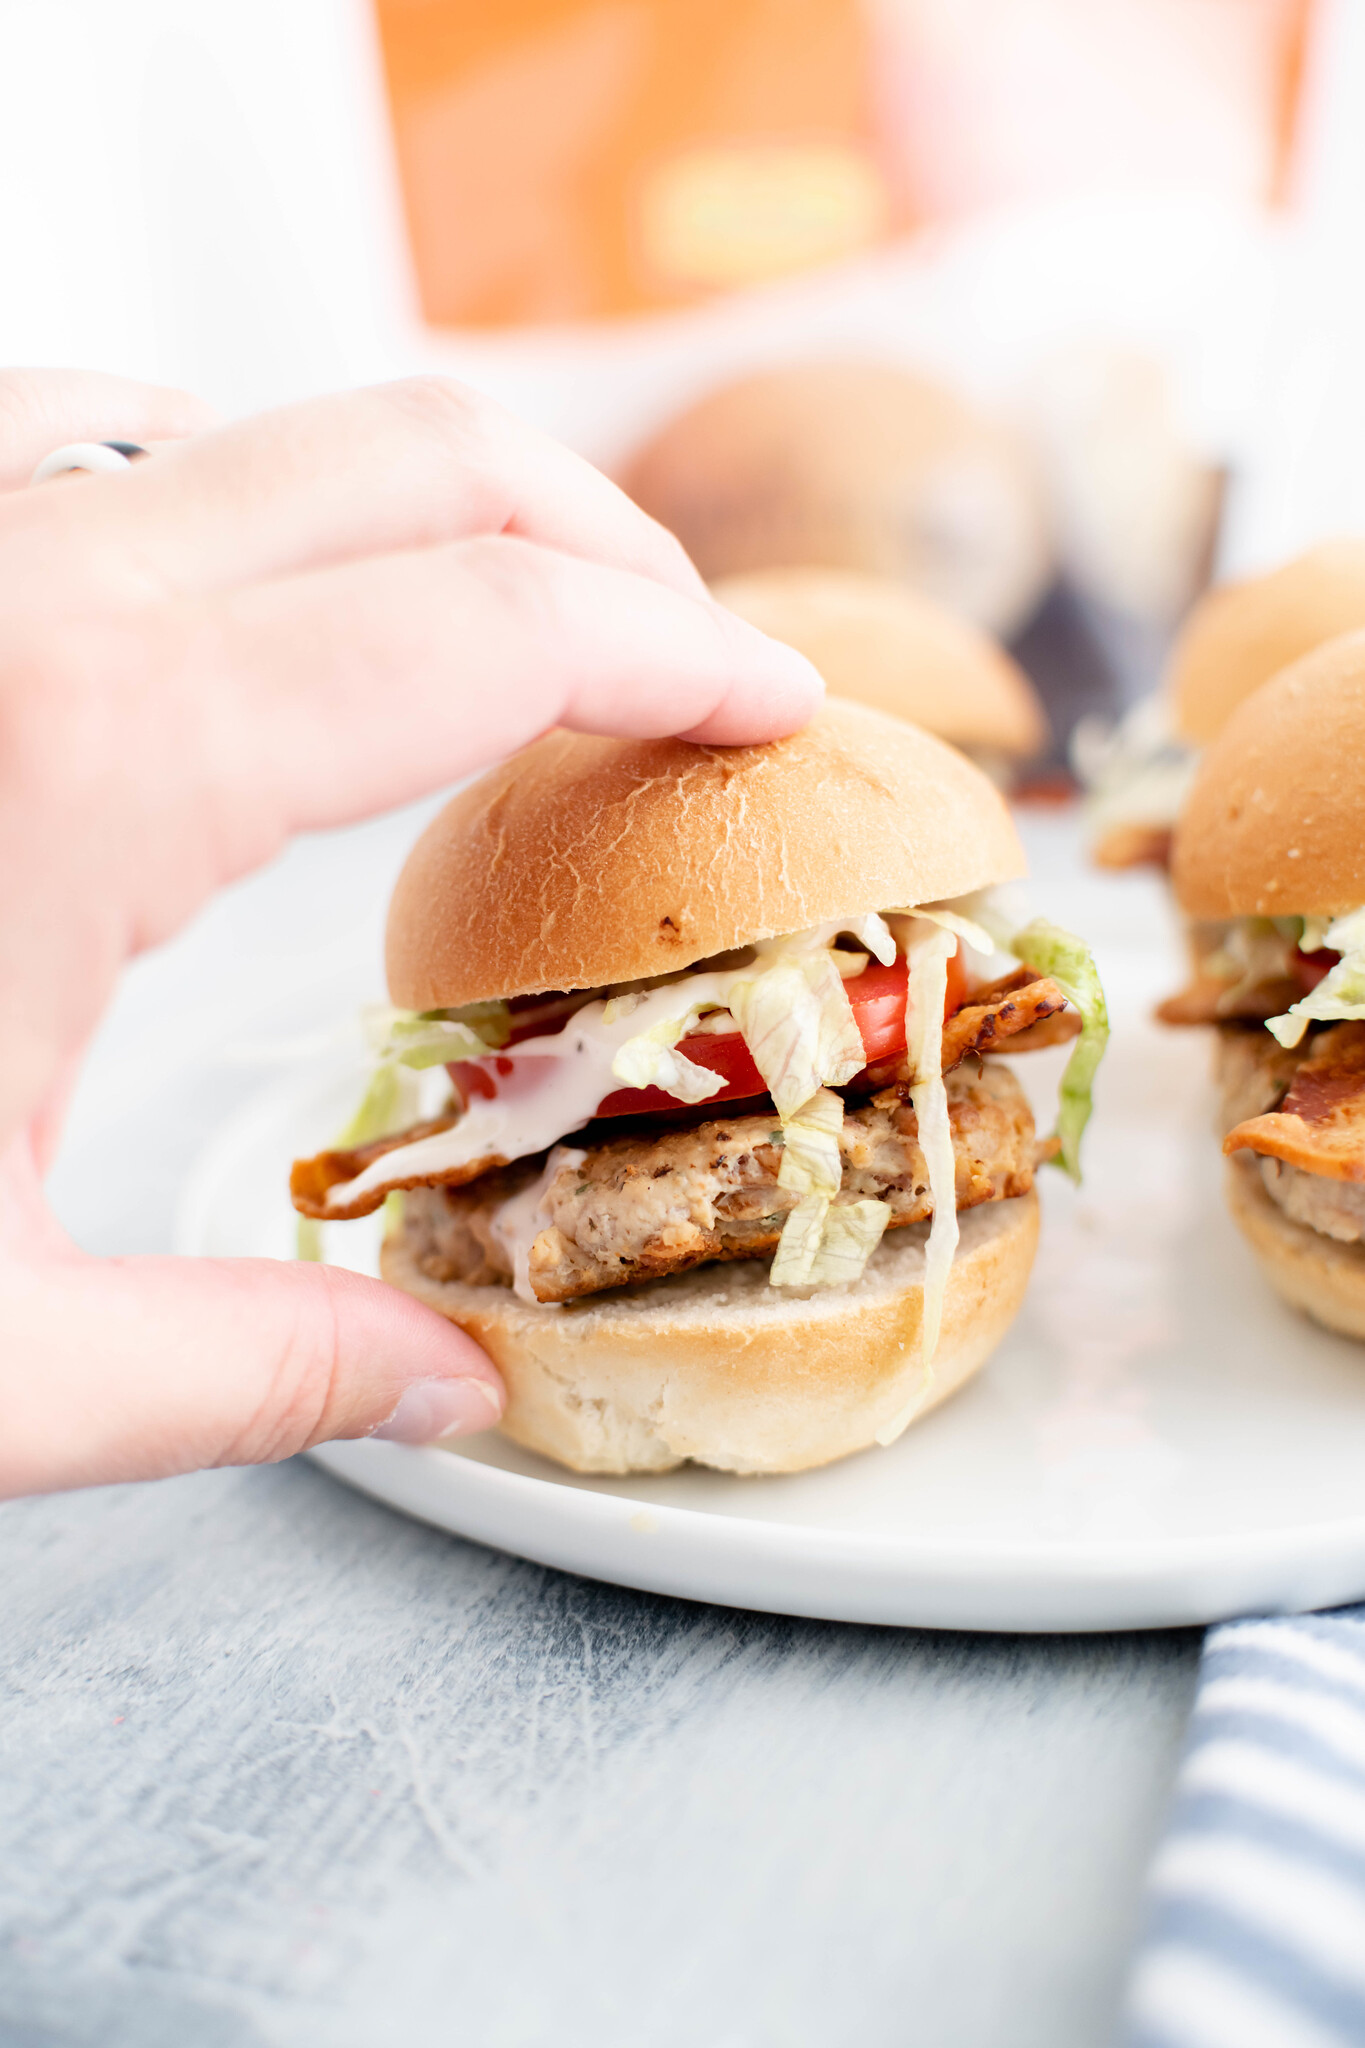 Get ready for back to school with these simple and delicious Chicken Bacon Ranch Sliders featuring Rhodes Warm & Serve rolls. They are sure to be a big hit with the family.